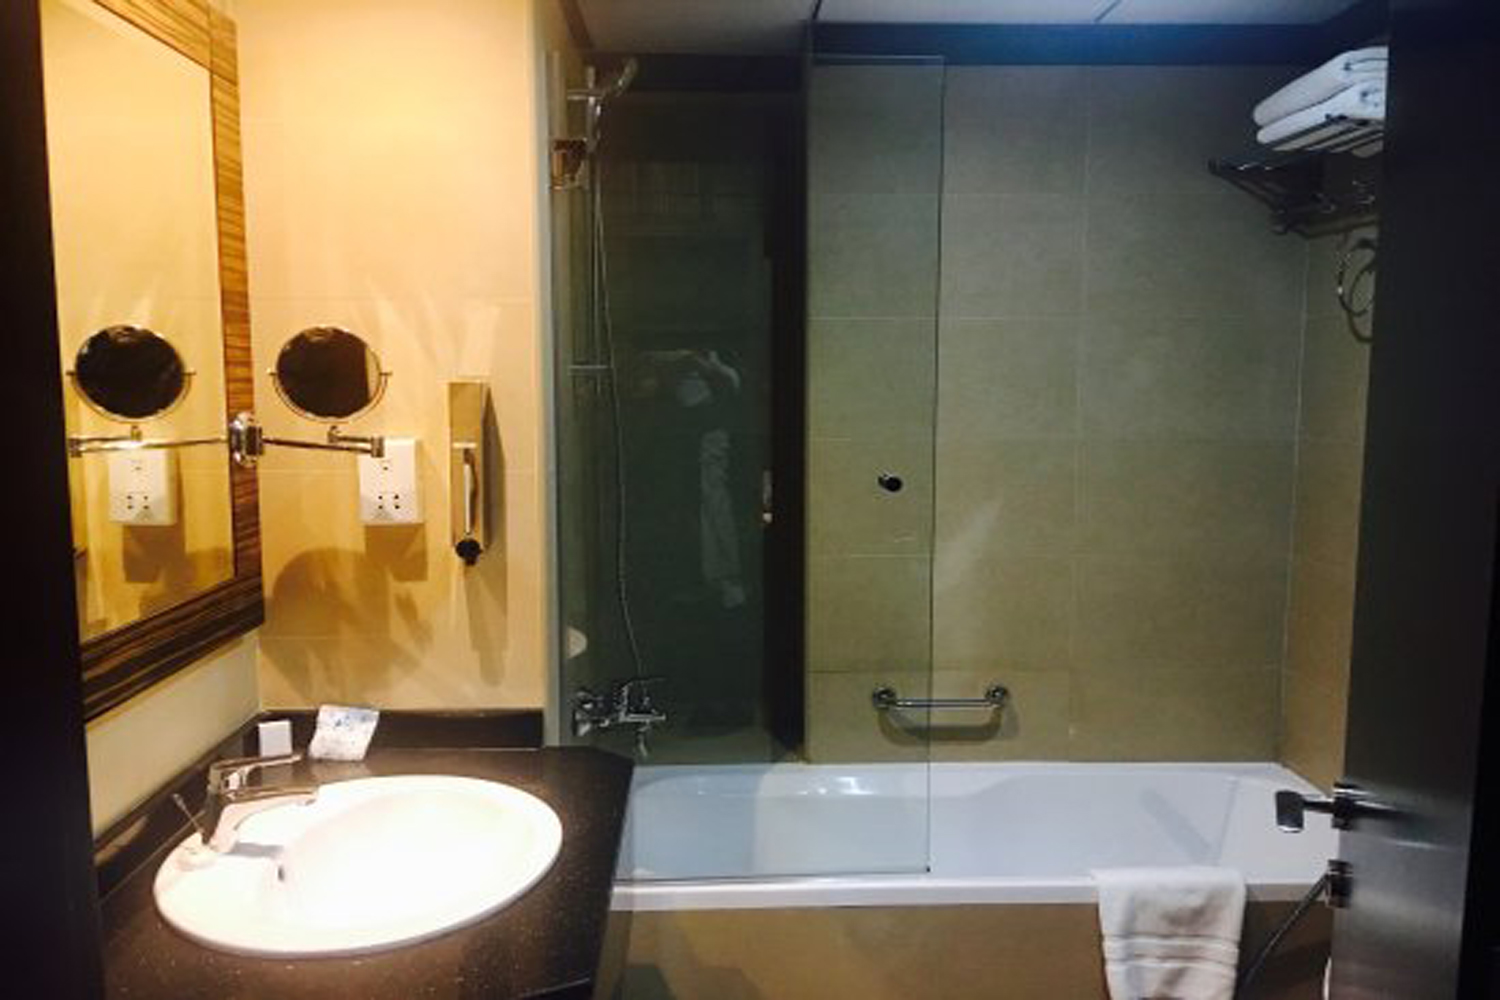 bathroom-image-1.jpg